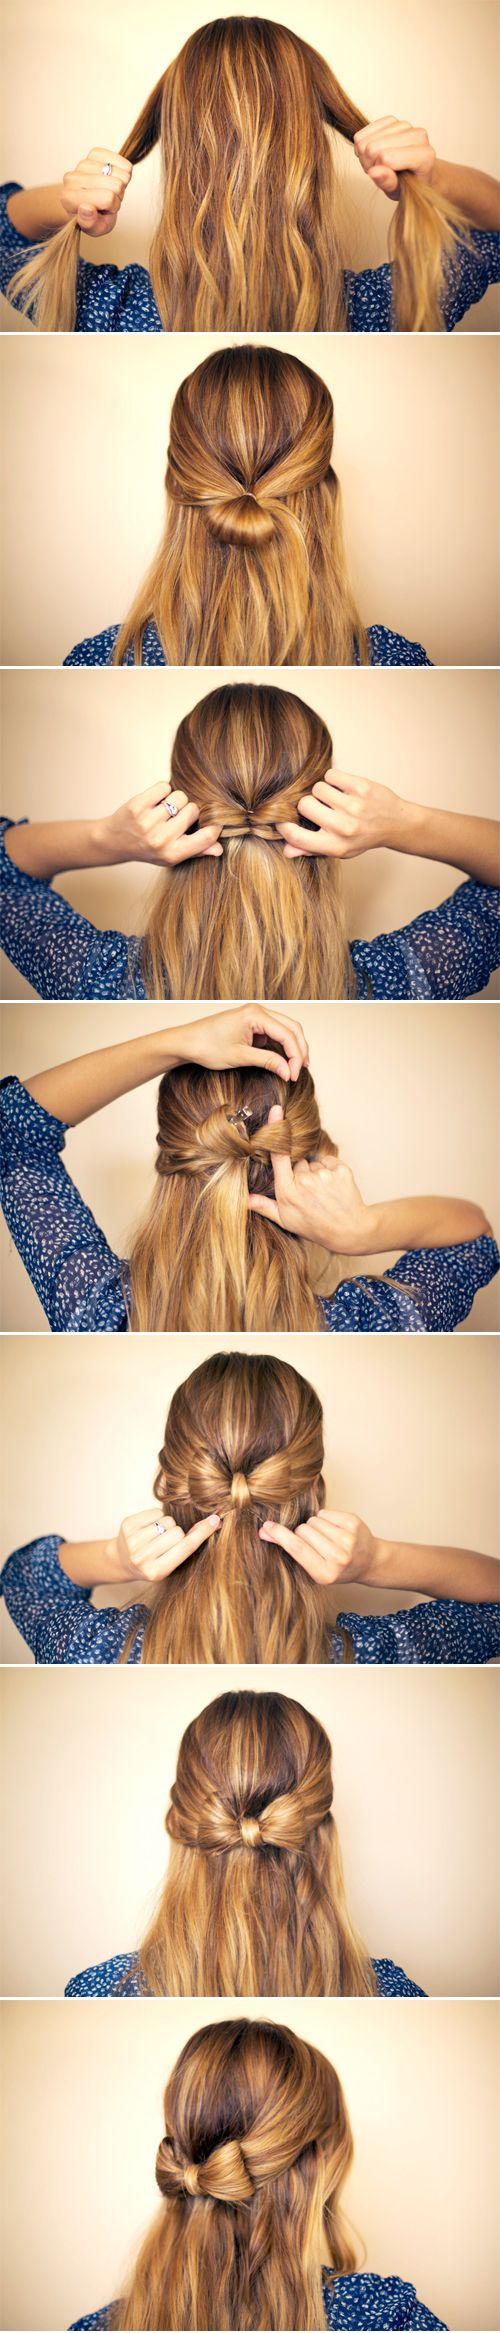 "An actual ""hair bow"" [no accessories needed]! - sweet, simple, and so many ways you could work this!"